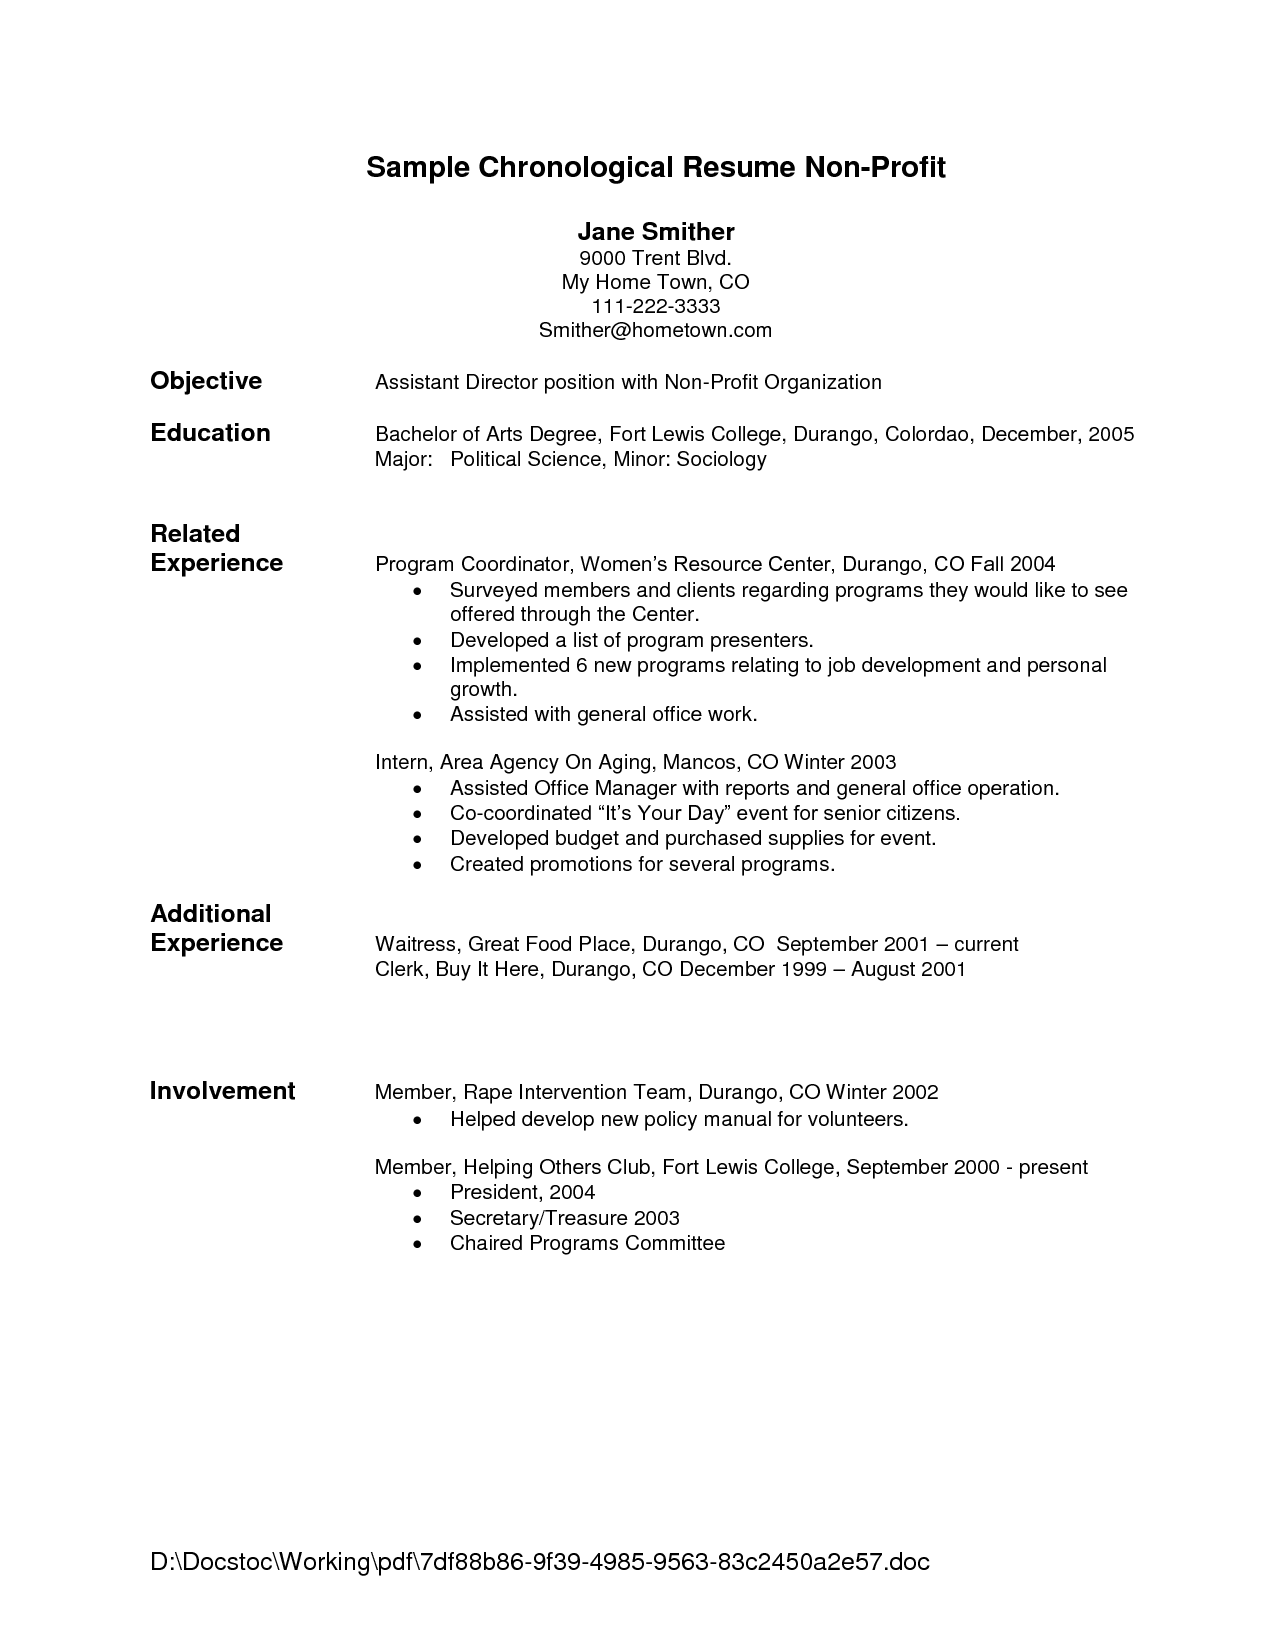 Sample Resume Letter Format Template Example For Writing With